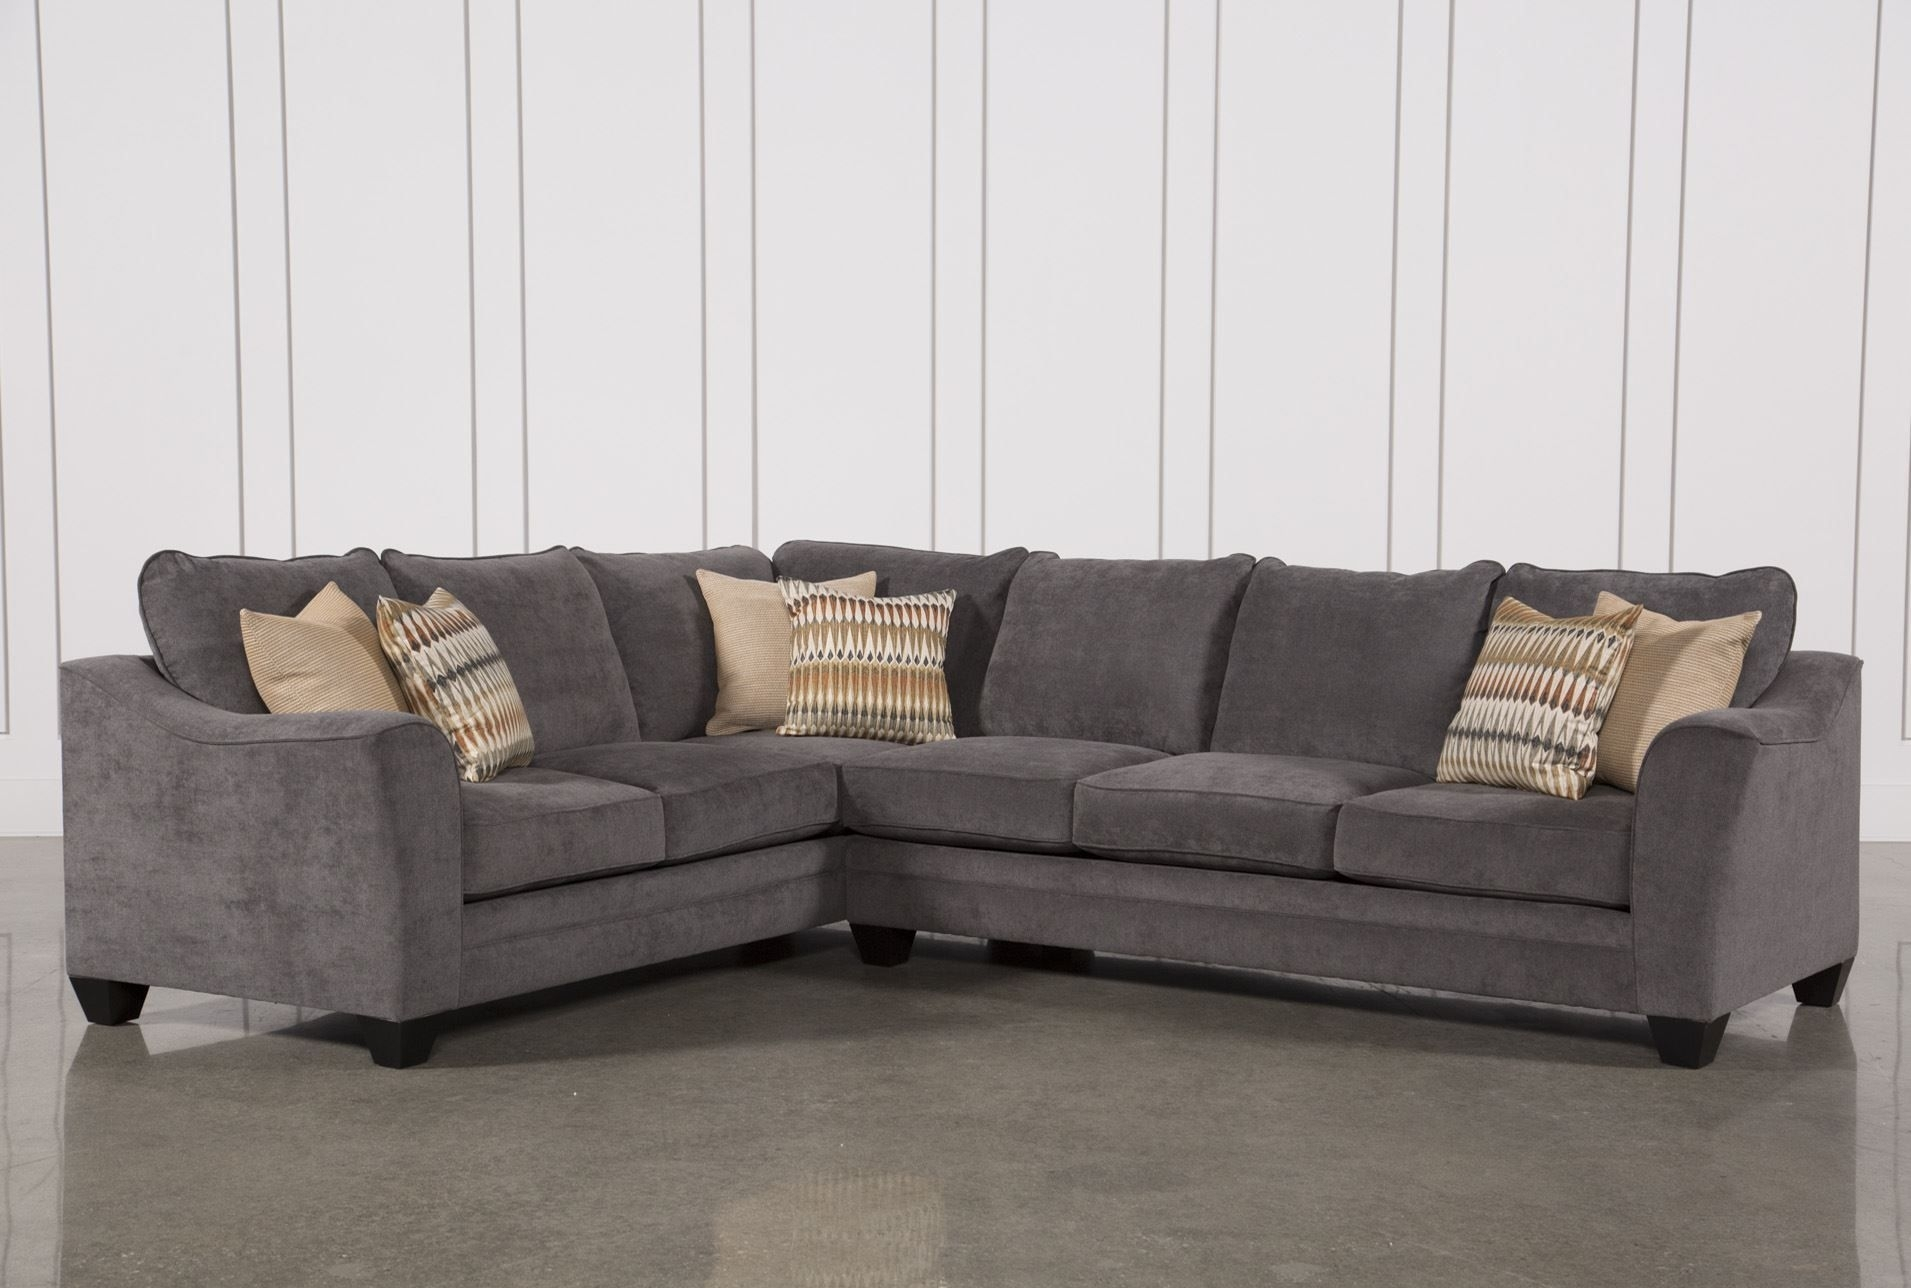 Mesa Foam 2 Piece Sectional | Cute Apartment Ideas | Pinterest Inside Harper Foam 3 Piece Sectionals With Raf Chaise (Image 13 of 25)